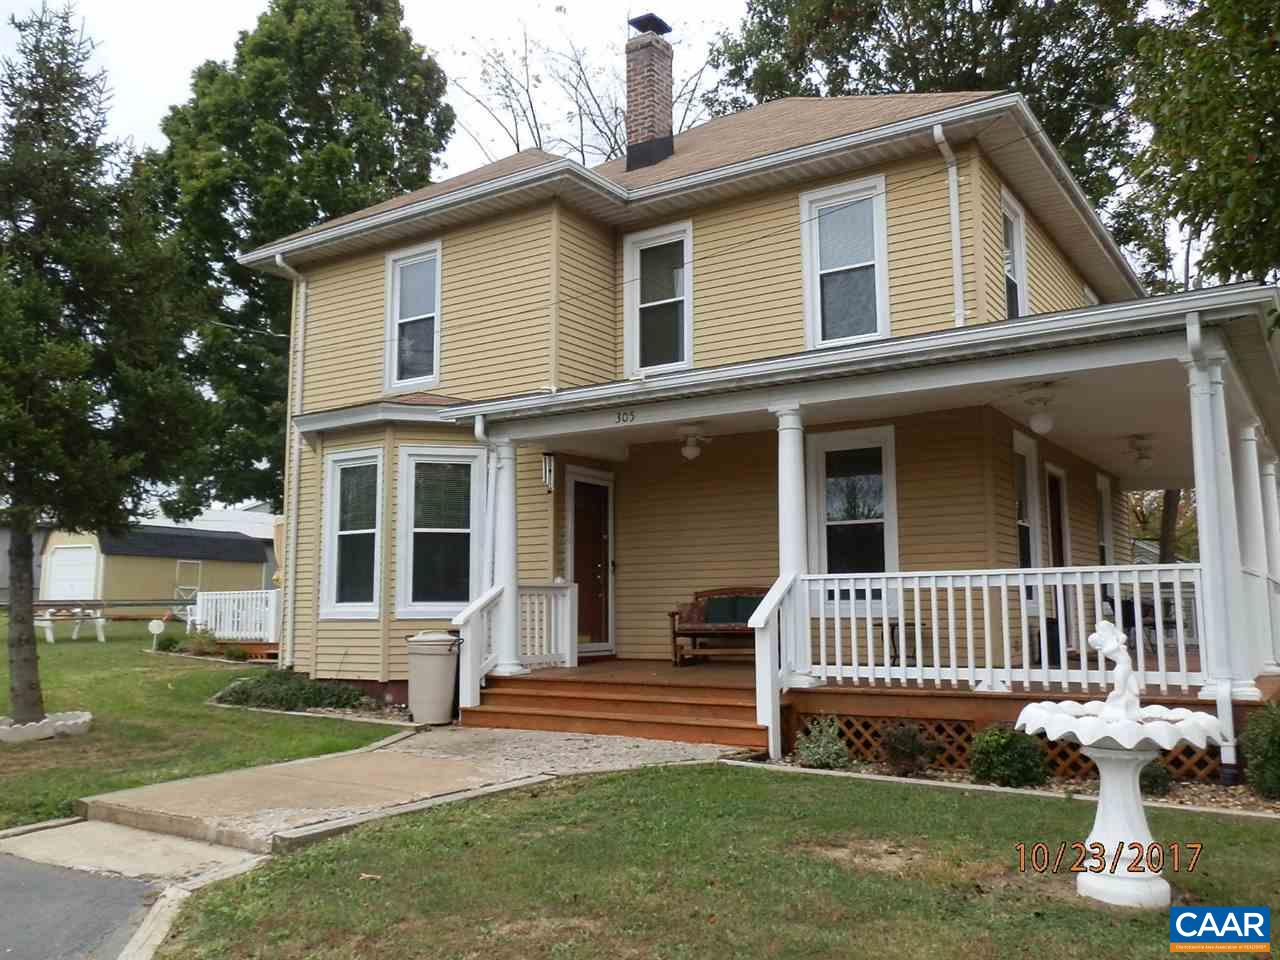 home for sale , MLS #568445, 305 Stonewall Ave